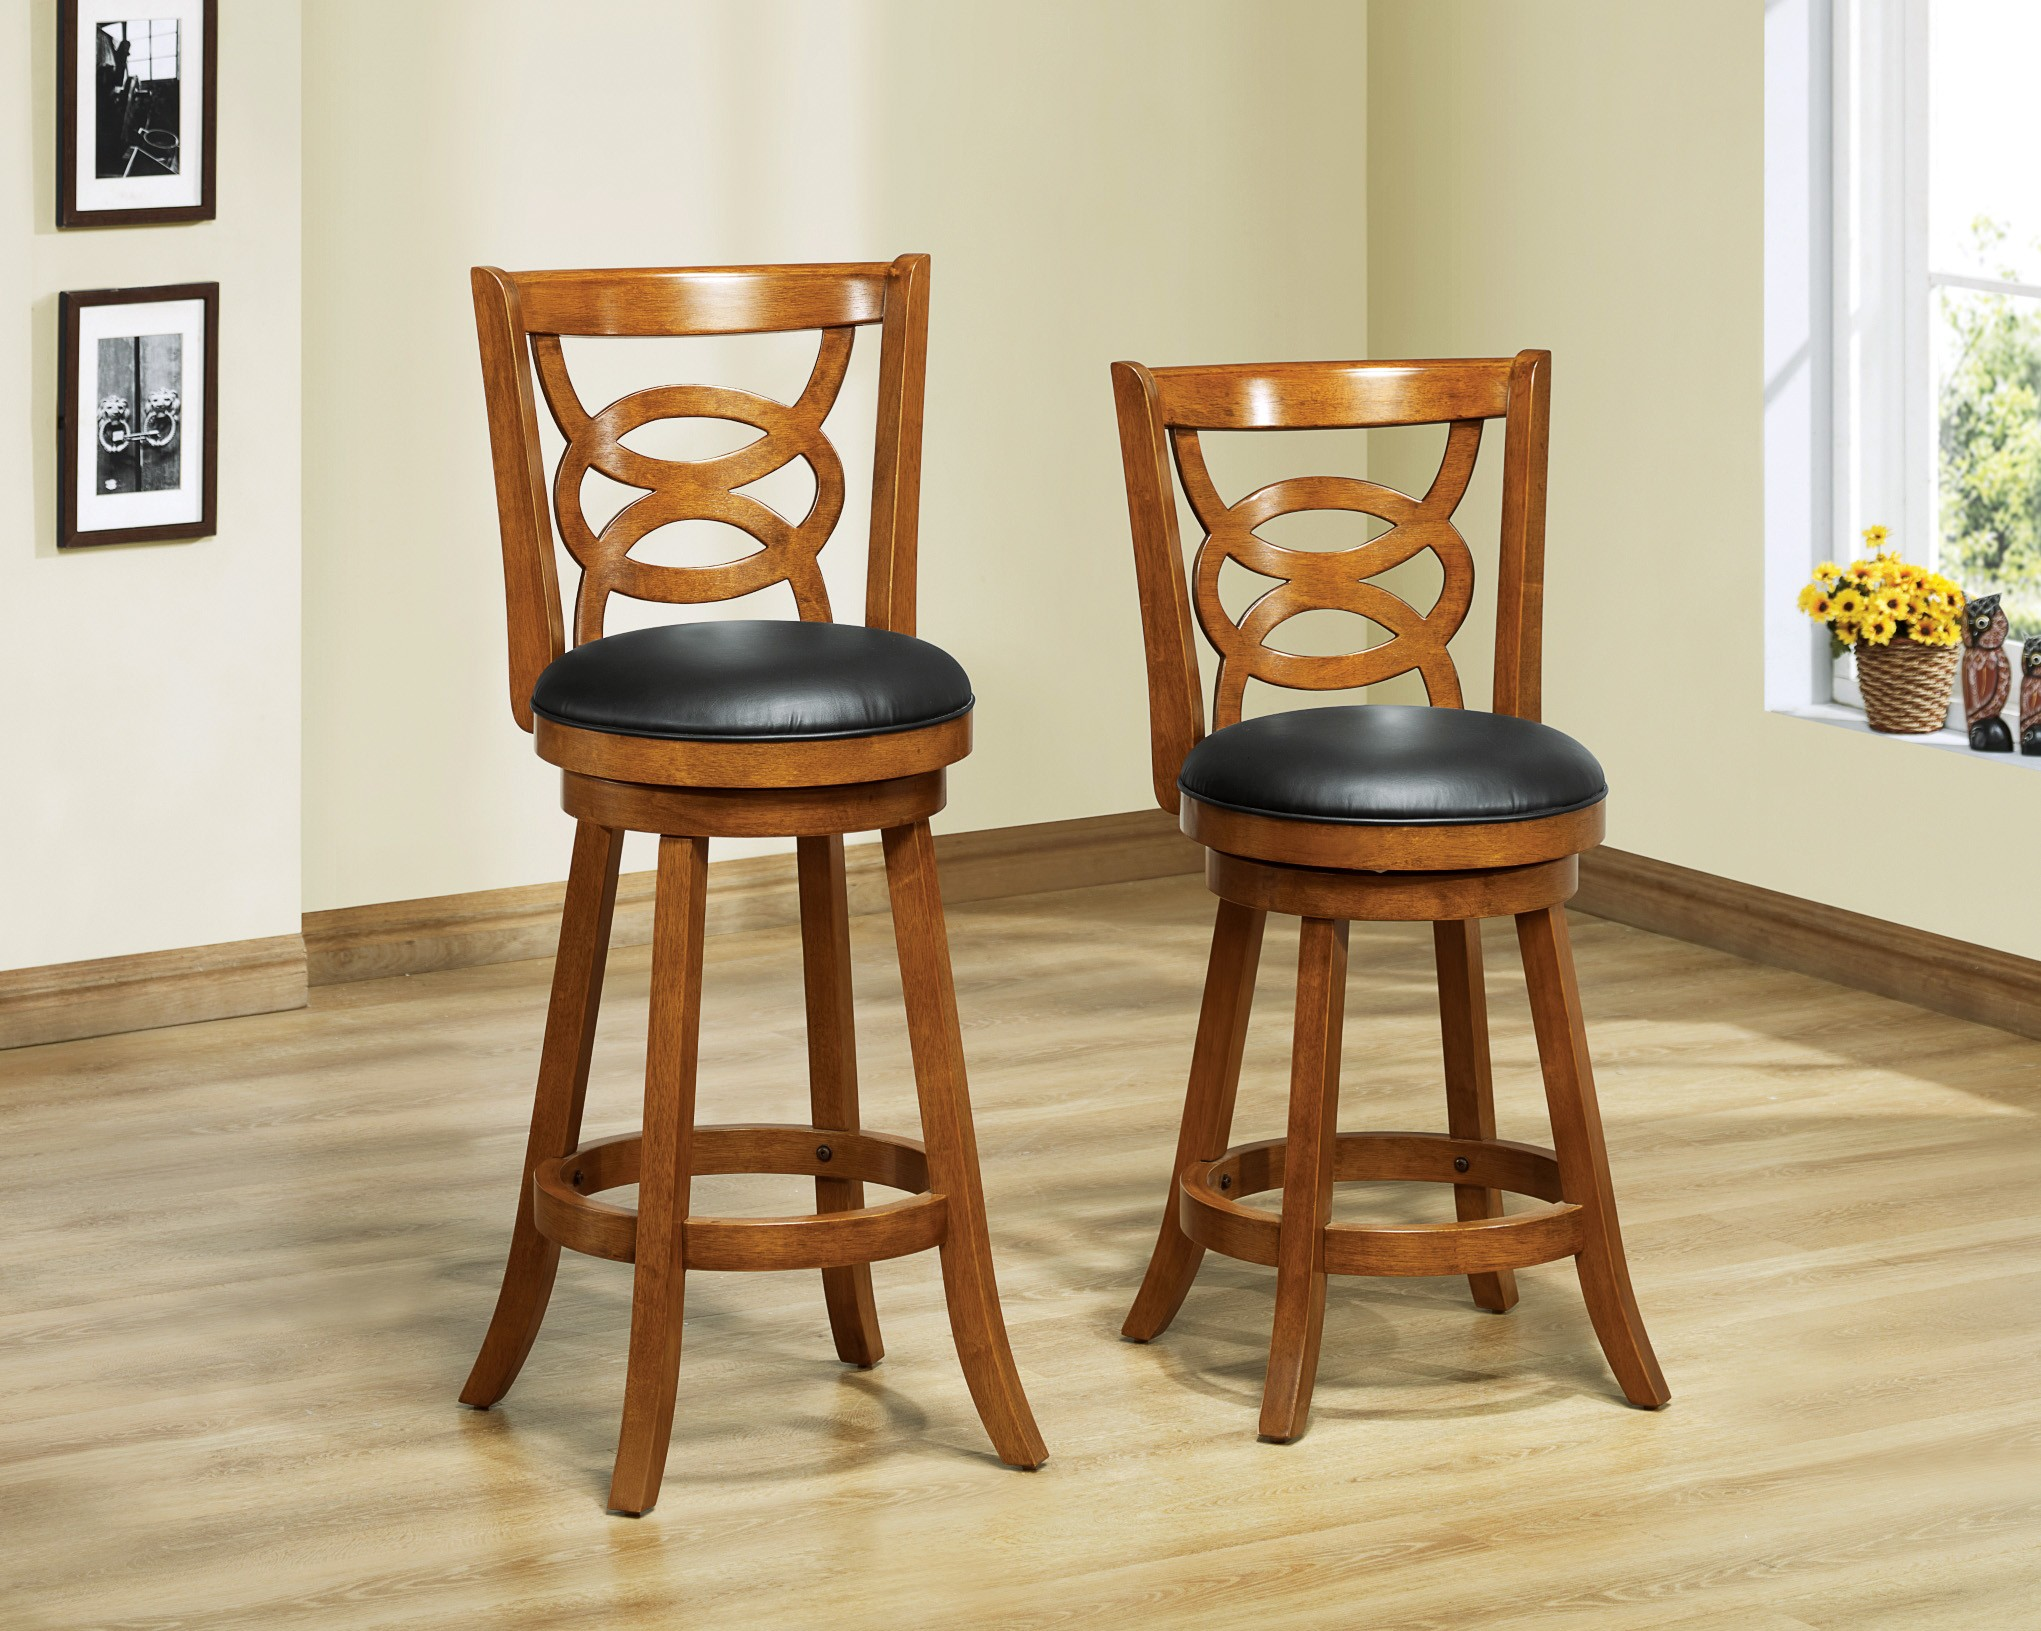 Wonderful image of 1252 Dark Oak Solid Wood 39 Swivel Counter Stool Set of 2 from  with #B89913 color and 2041x1631 pixels